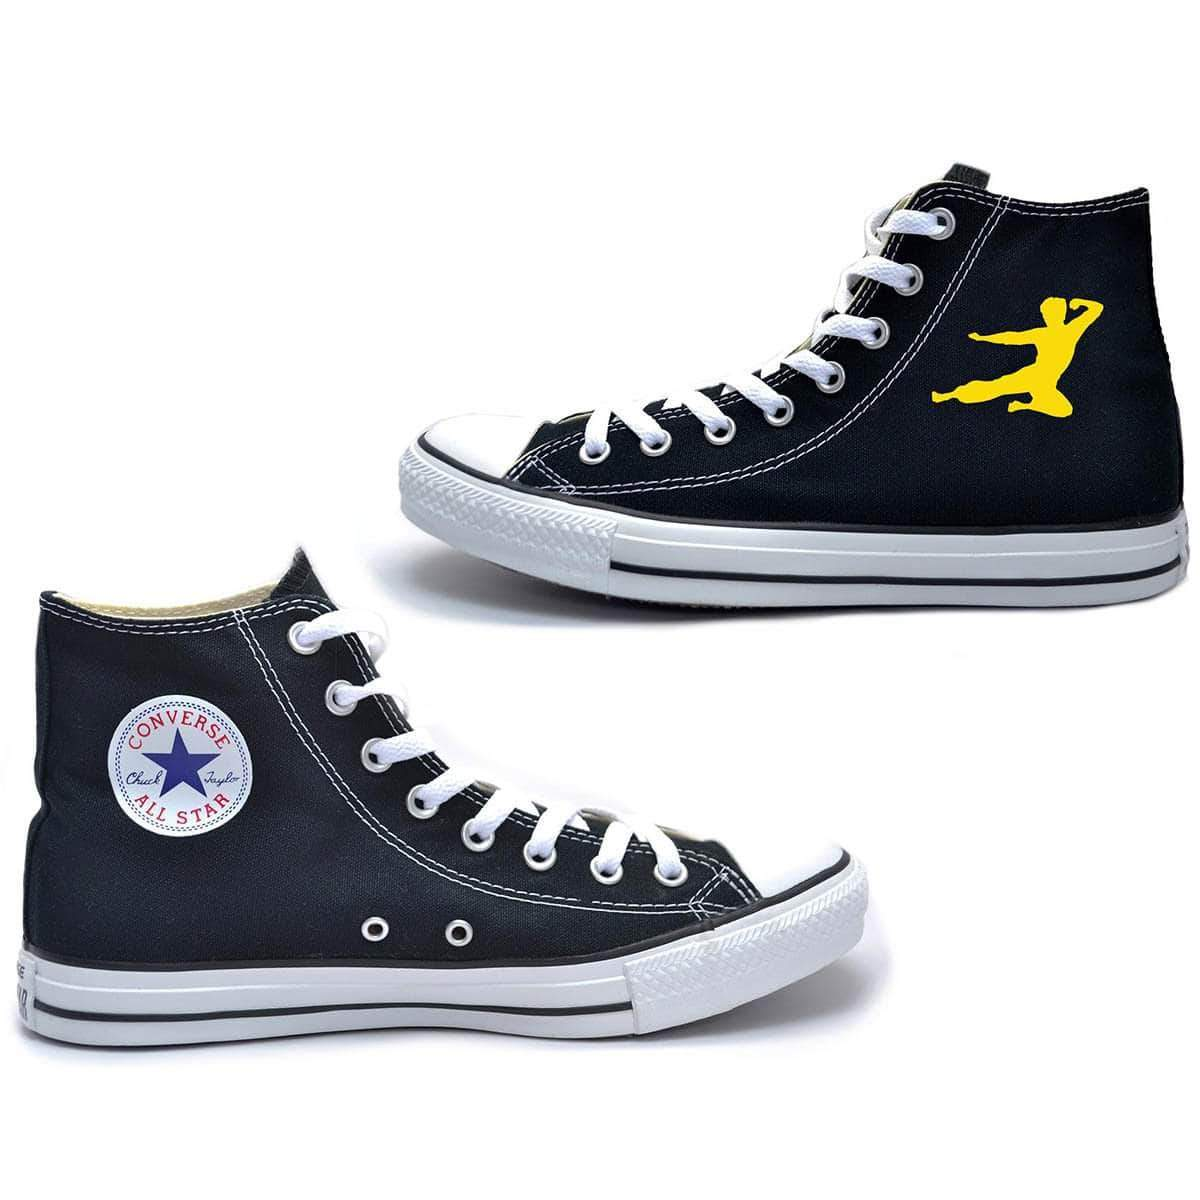 Flying Man Converse All-Star High Top